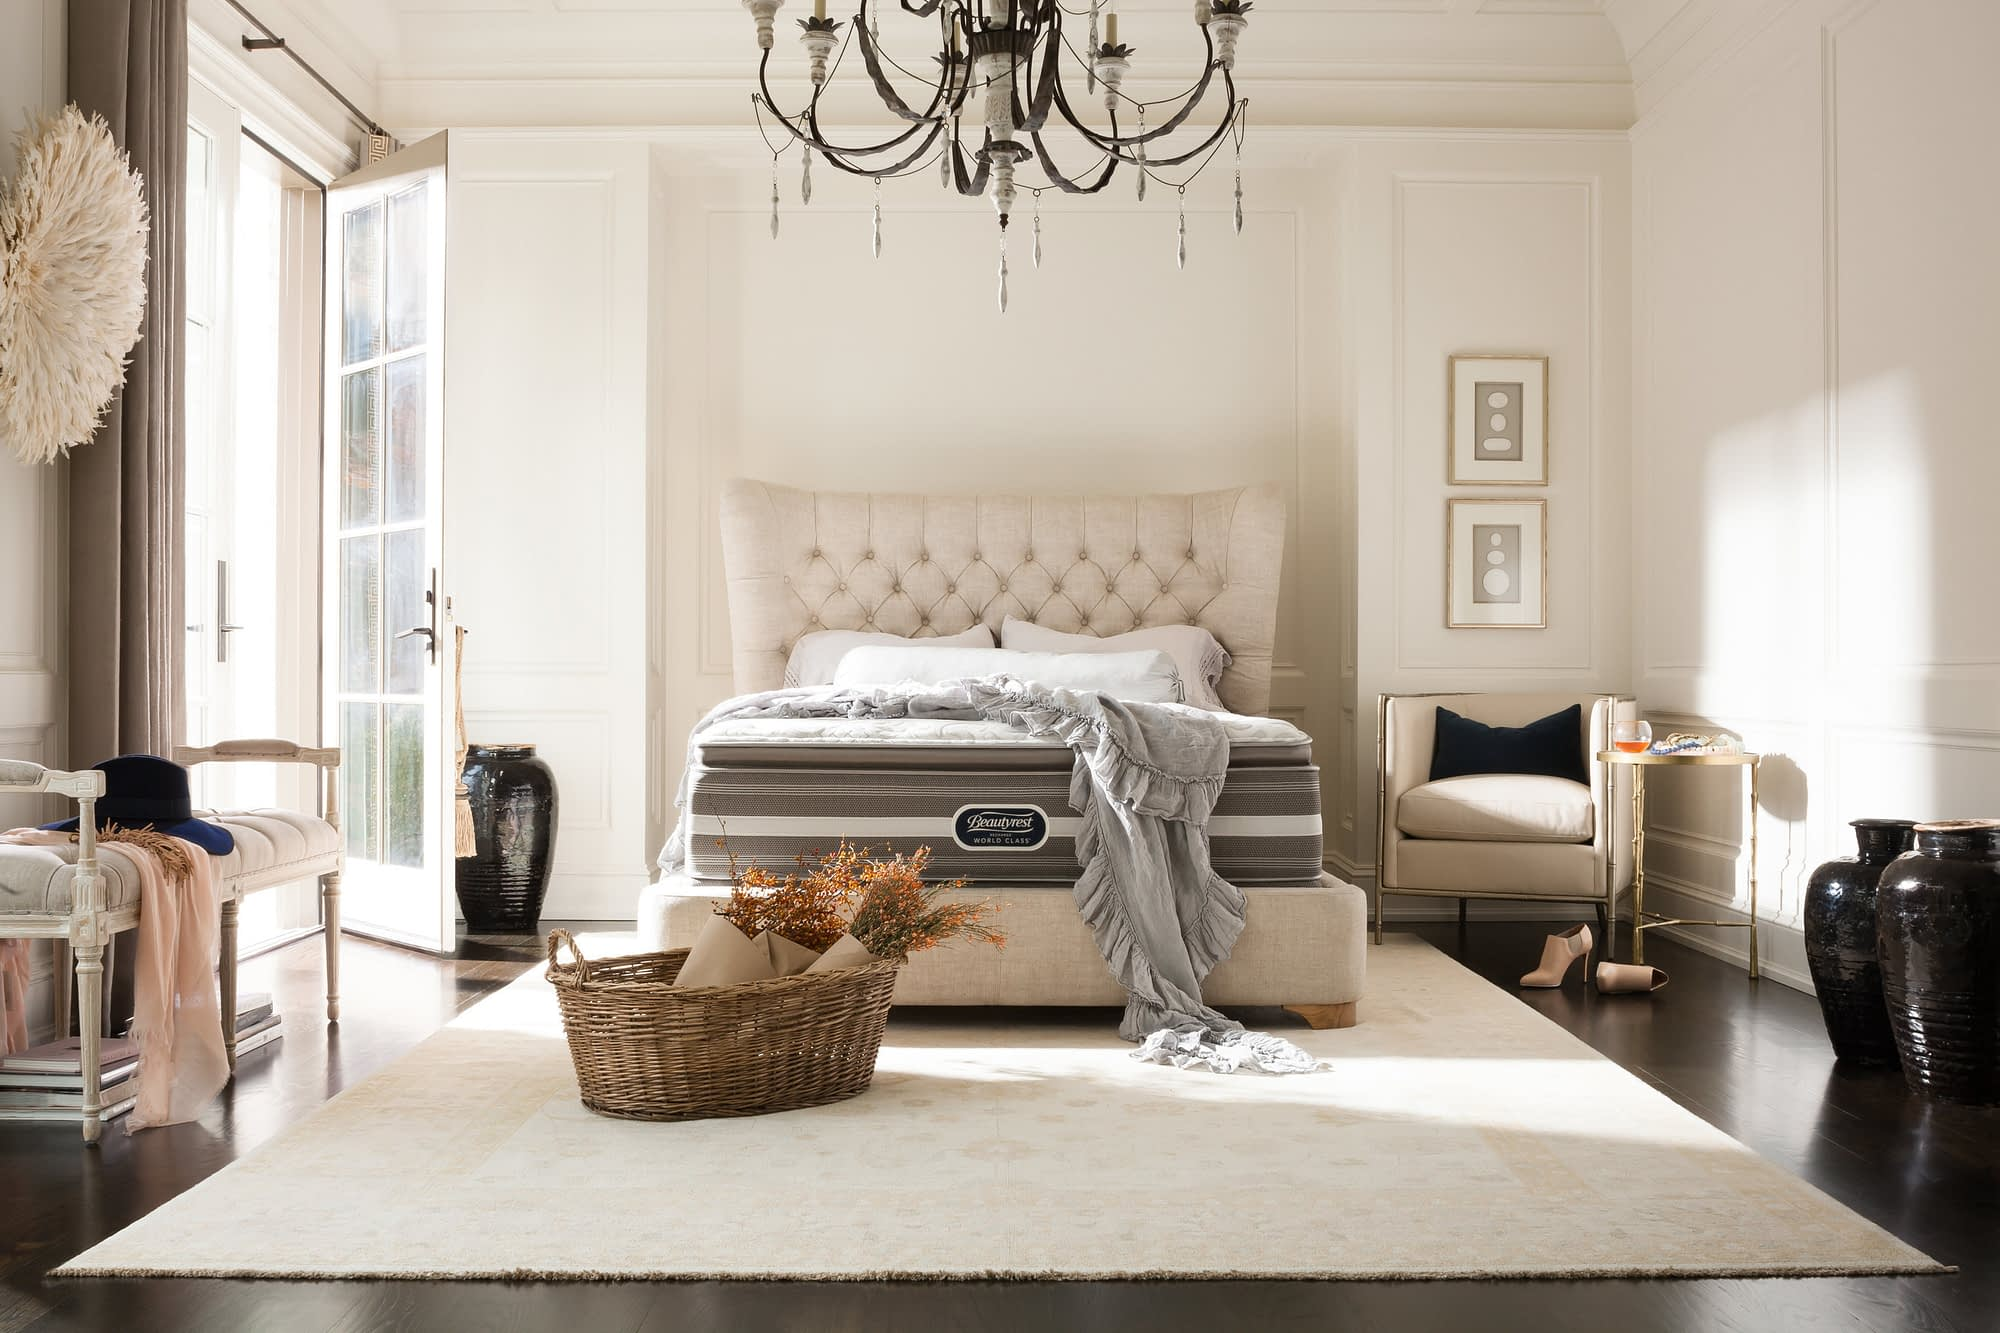 A large bedroom with beige walls, a beige carpet, and beige bed. The bed has a Beautyrest mattress on it.